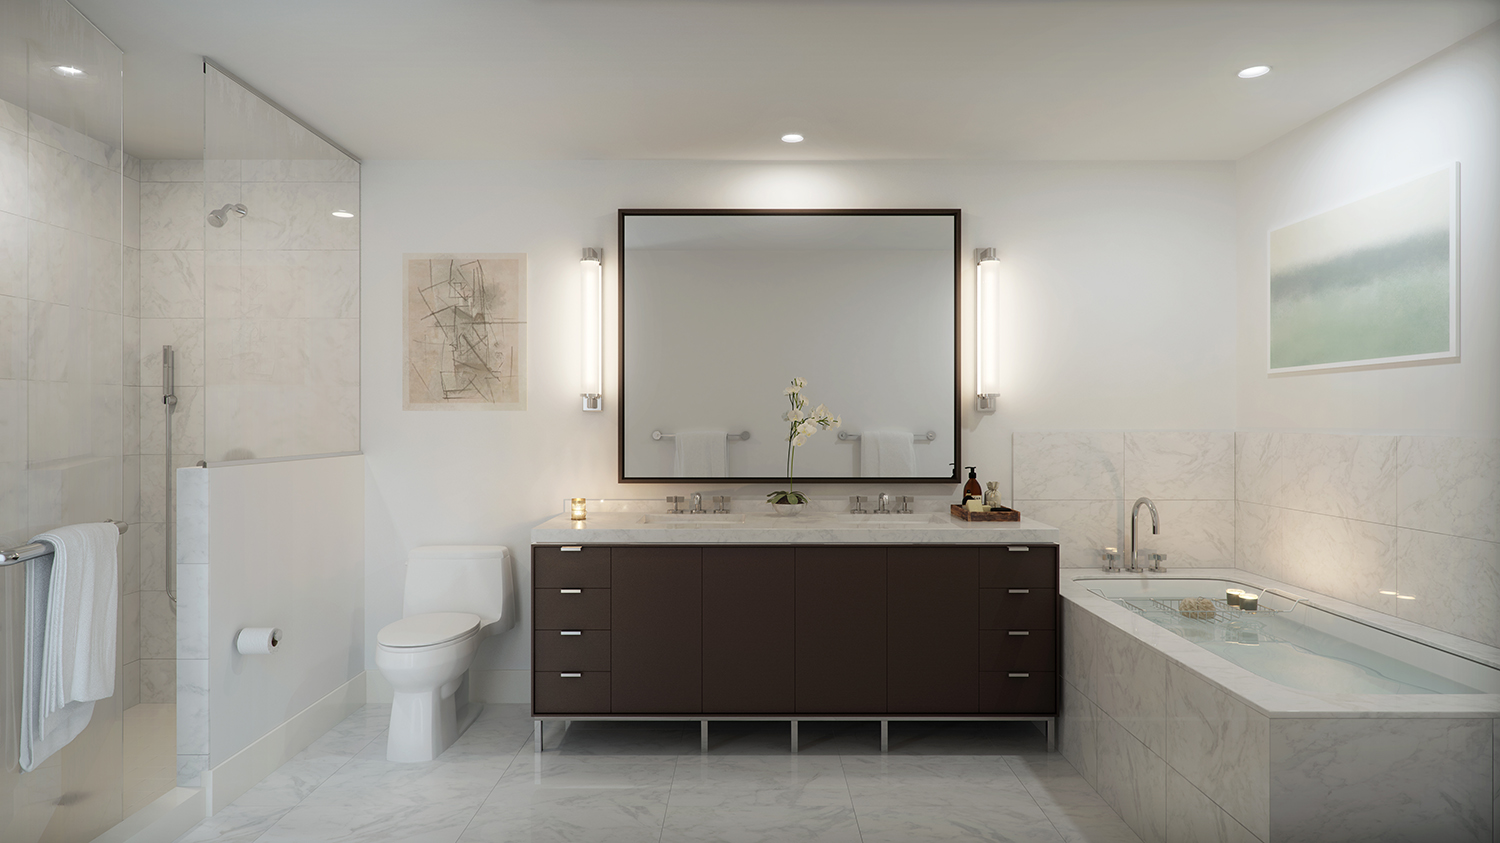 Rendering of a bathroom at 456 Washington Street. Exclusive to YIMBY.